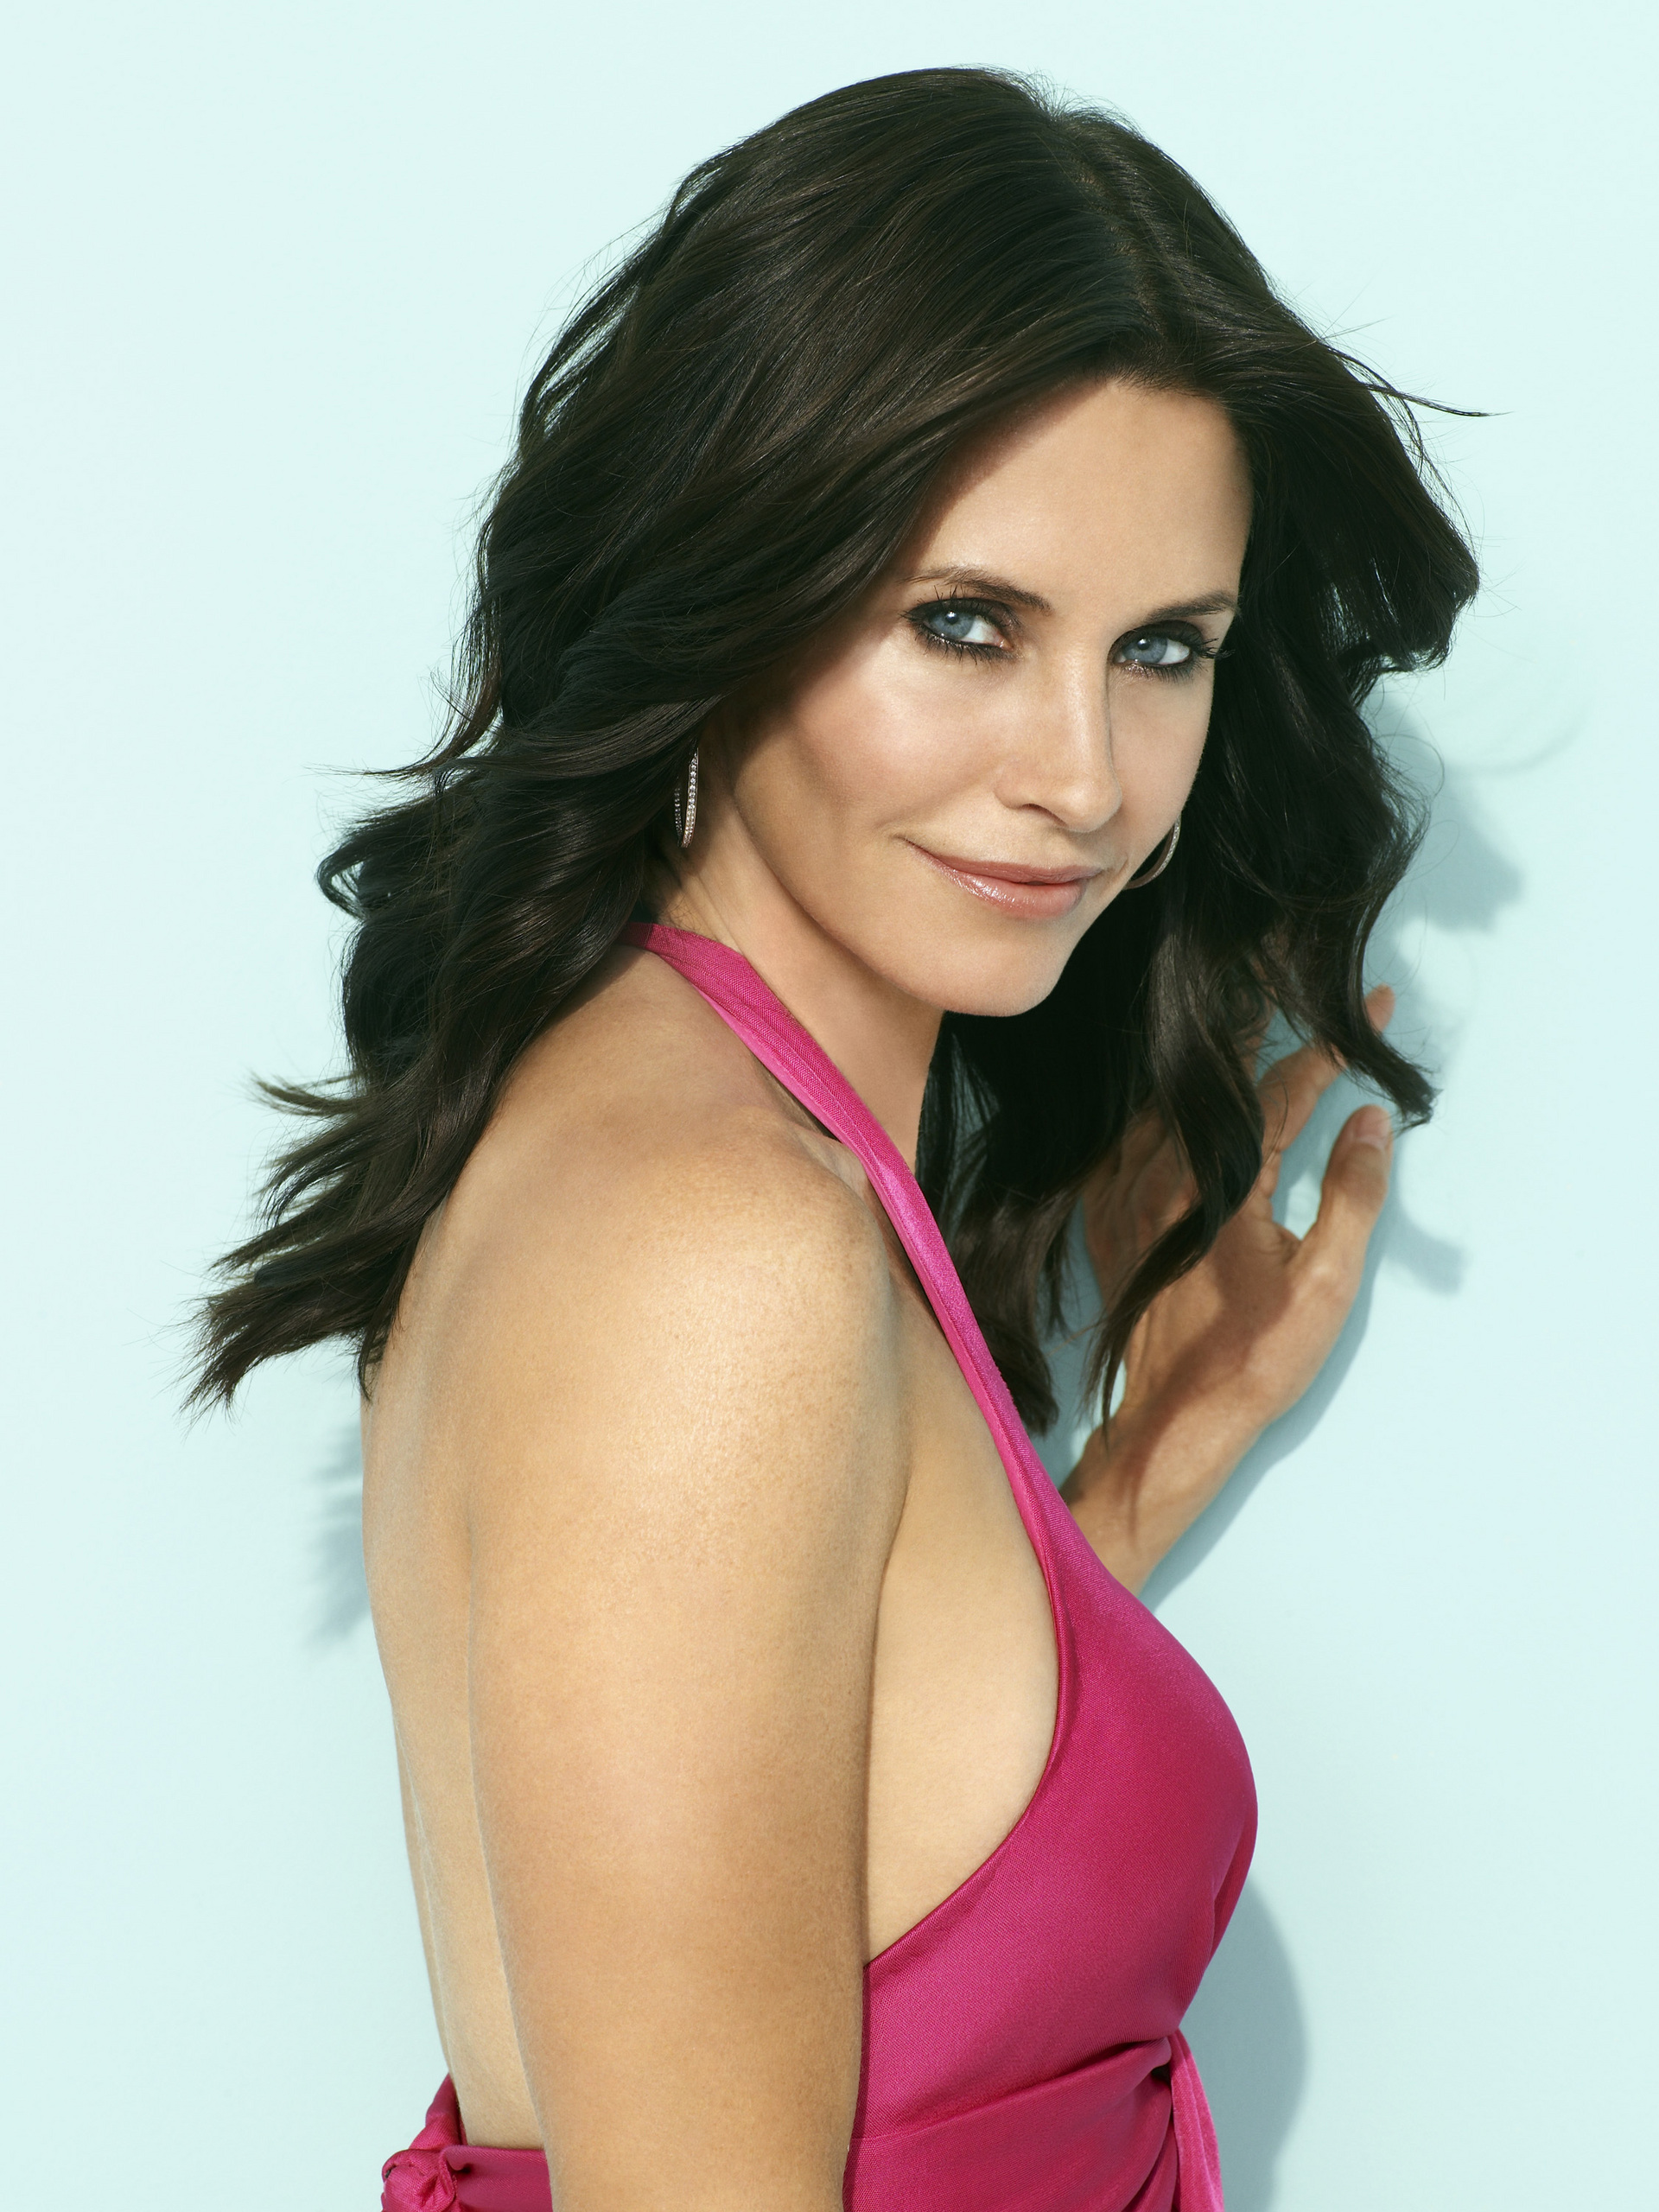 HQ Courteney Cox Wallpapers | File 1122.45Kb